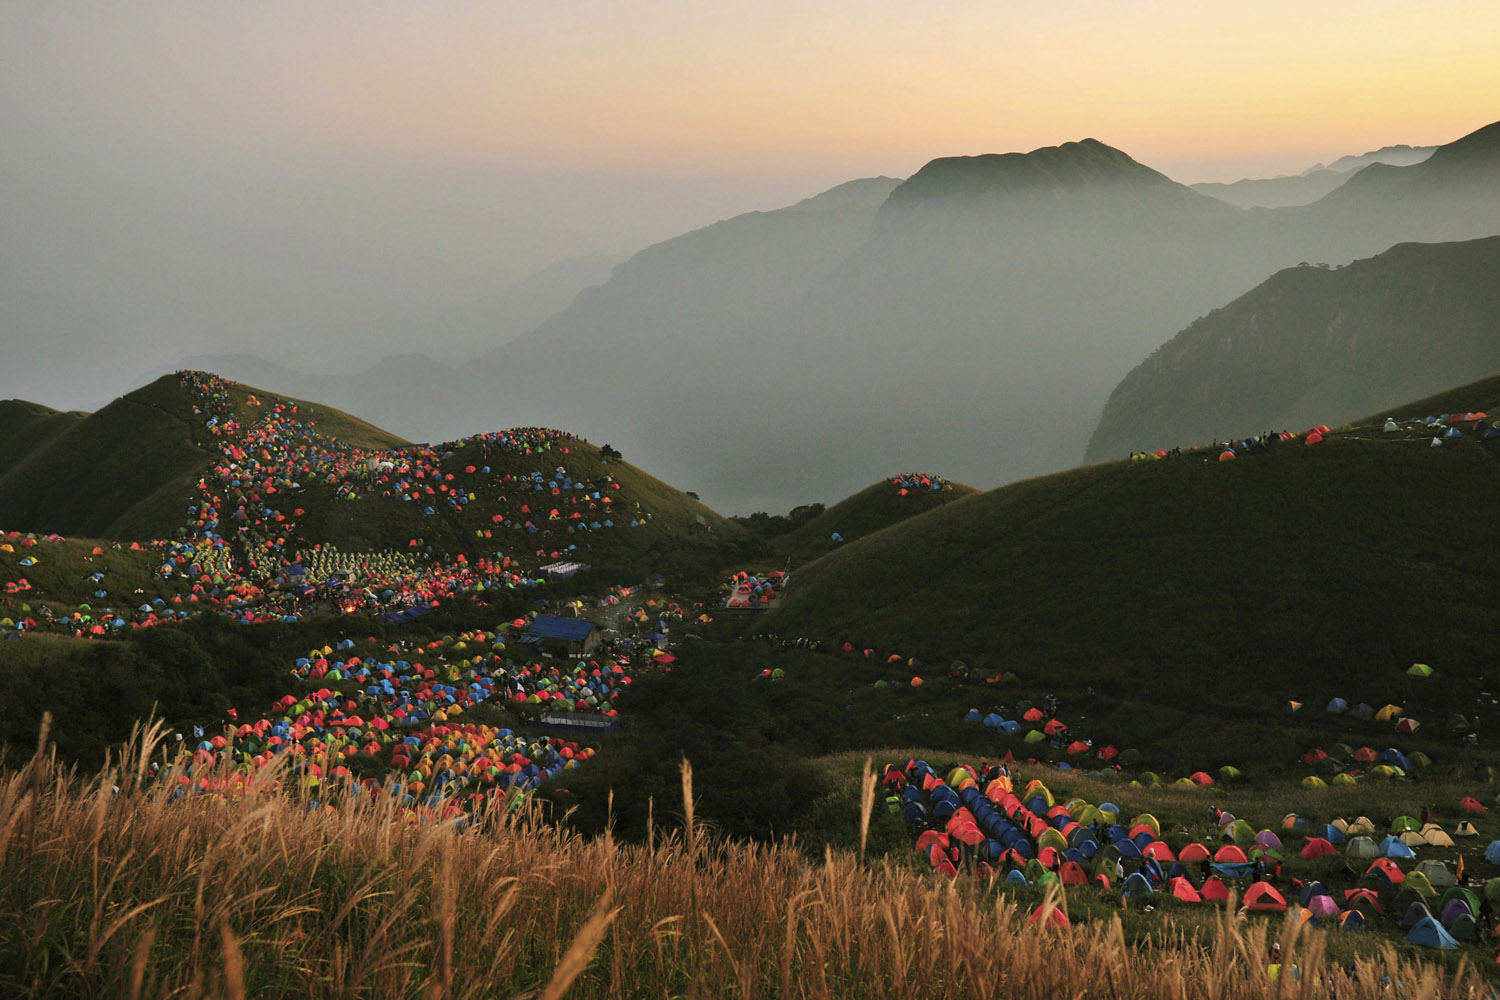 Sept. 15, 2013. Numerous tents are seen during the 2013 International I Camping Festival in Mount Wugongshan of Pingxiang, Jiangxi province, China.